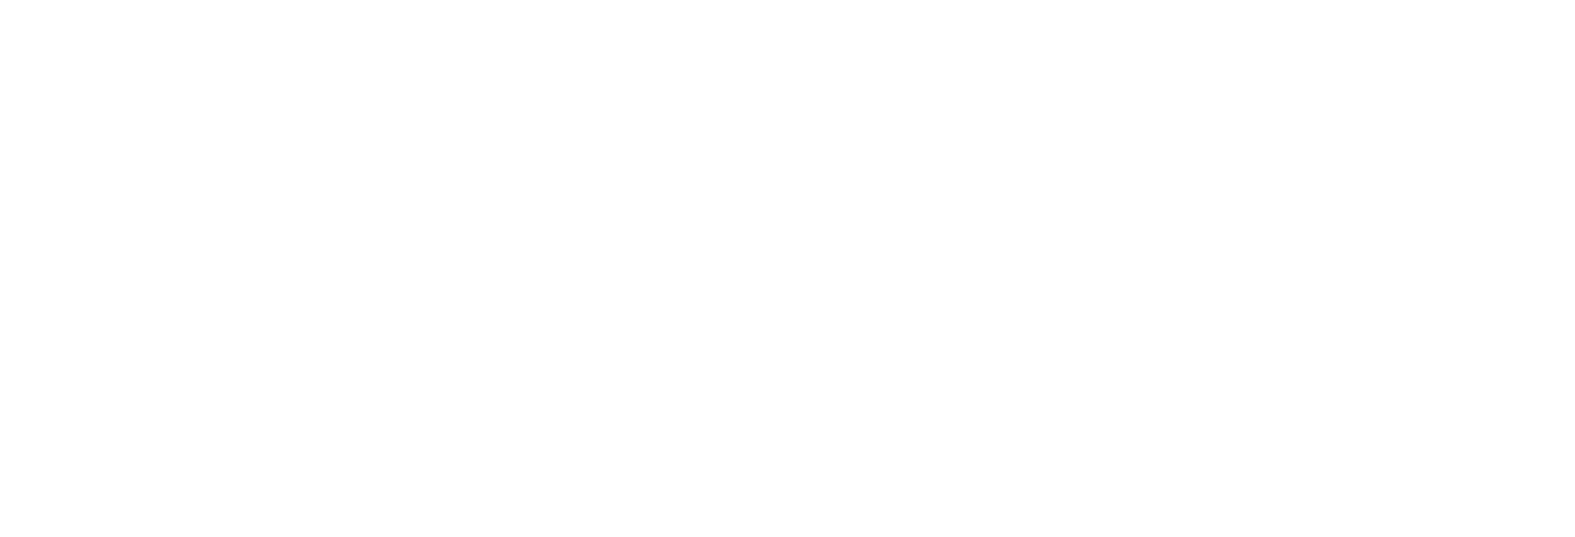 1_What_a_mess_the_whole_kingdom_has_gotten_into_Its_not_the_first_time_weve_been_on_an_evil_twisted_path.png